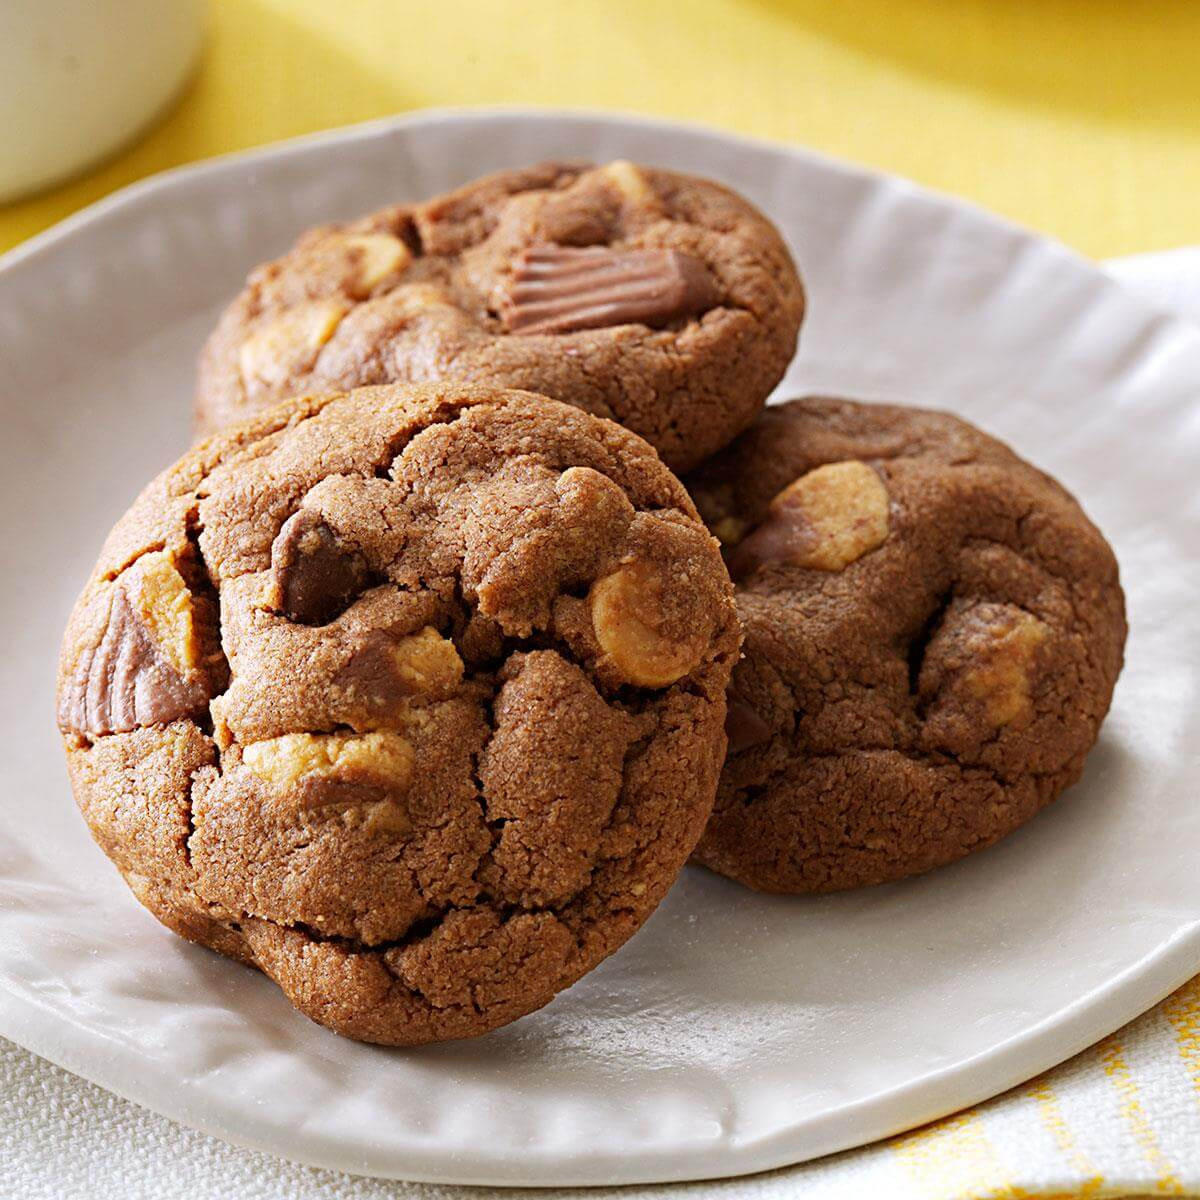 Peanut Butter Cup Cookies  Chocolate Peanut Butter Cup Cookies Recipe